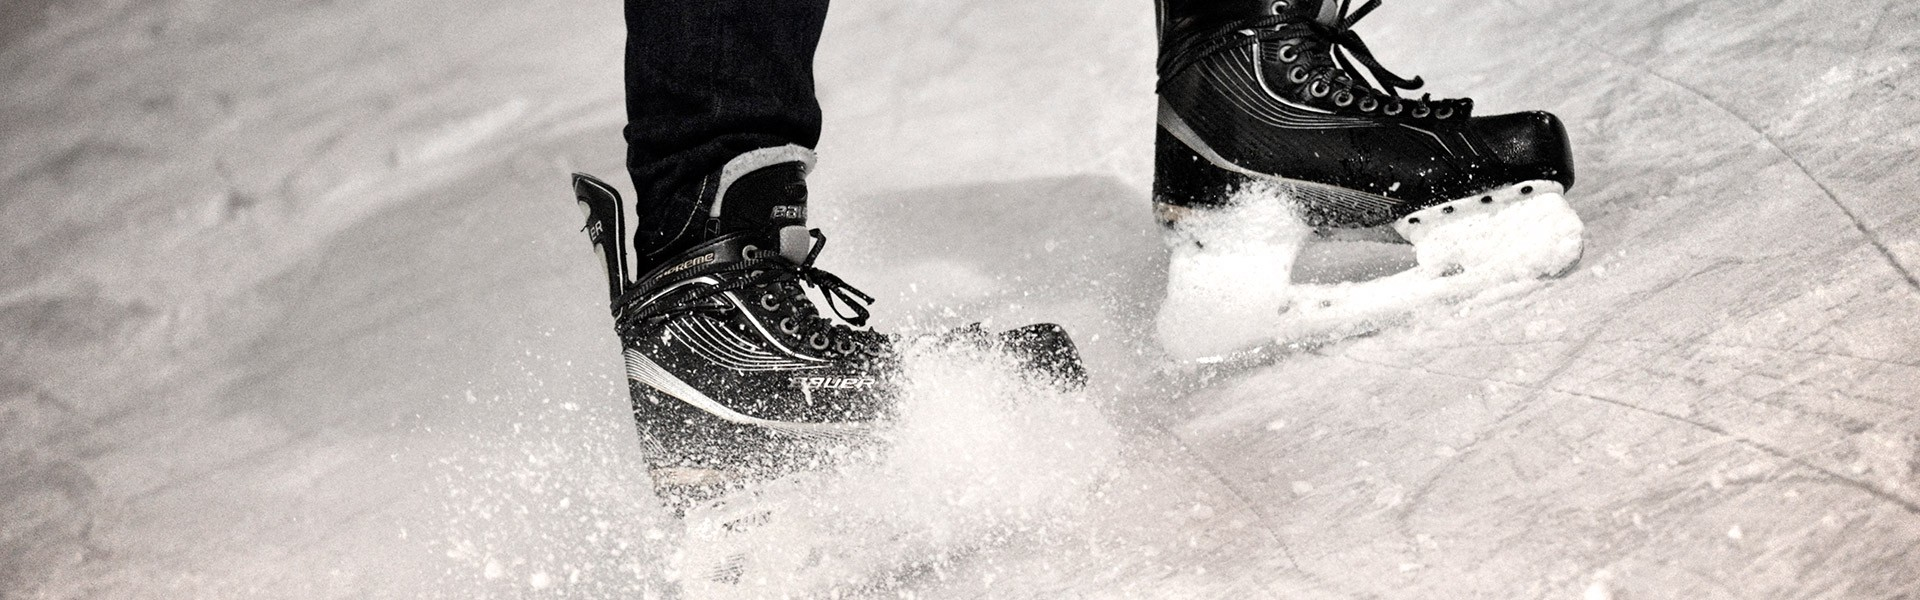 patinoire-2293